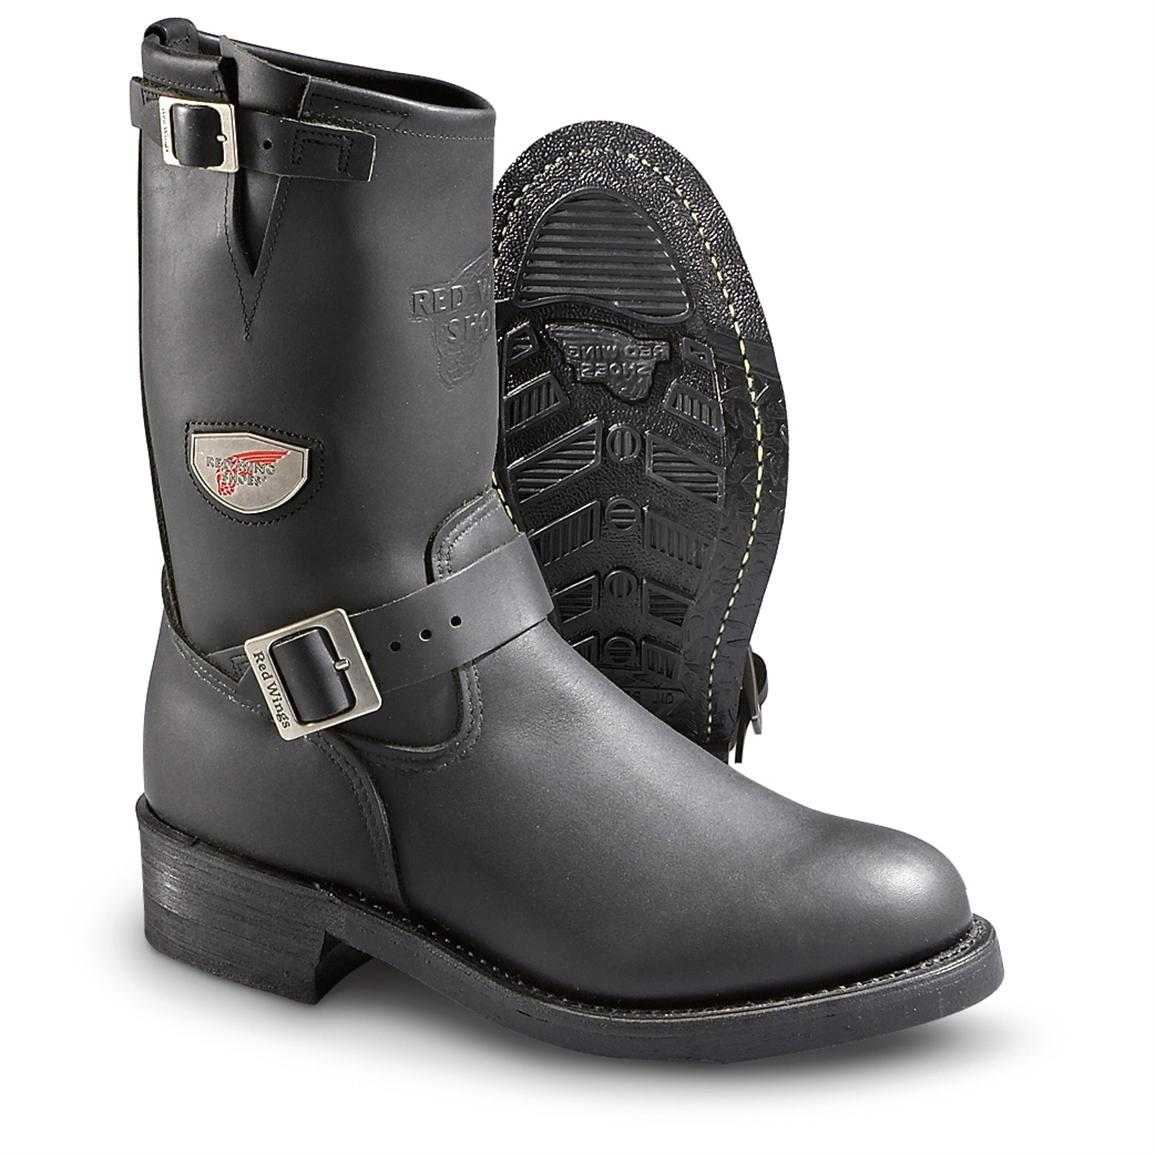 Men S Red Wing 174 Engineer Boots Black 168170 Motorcycle